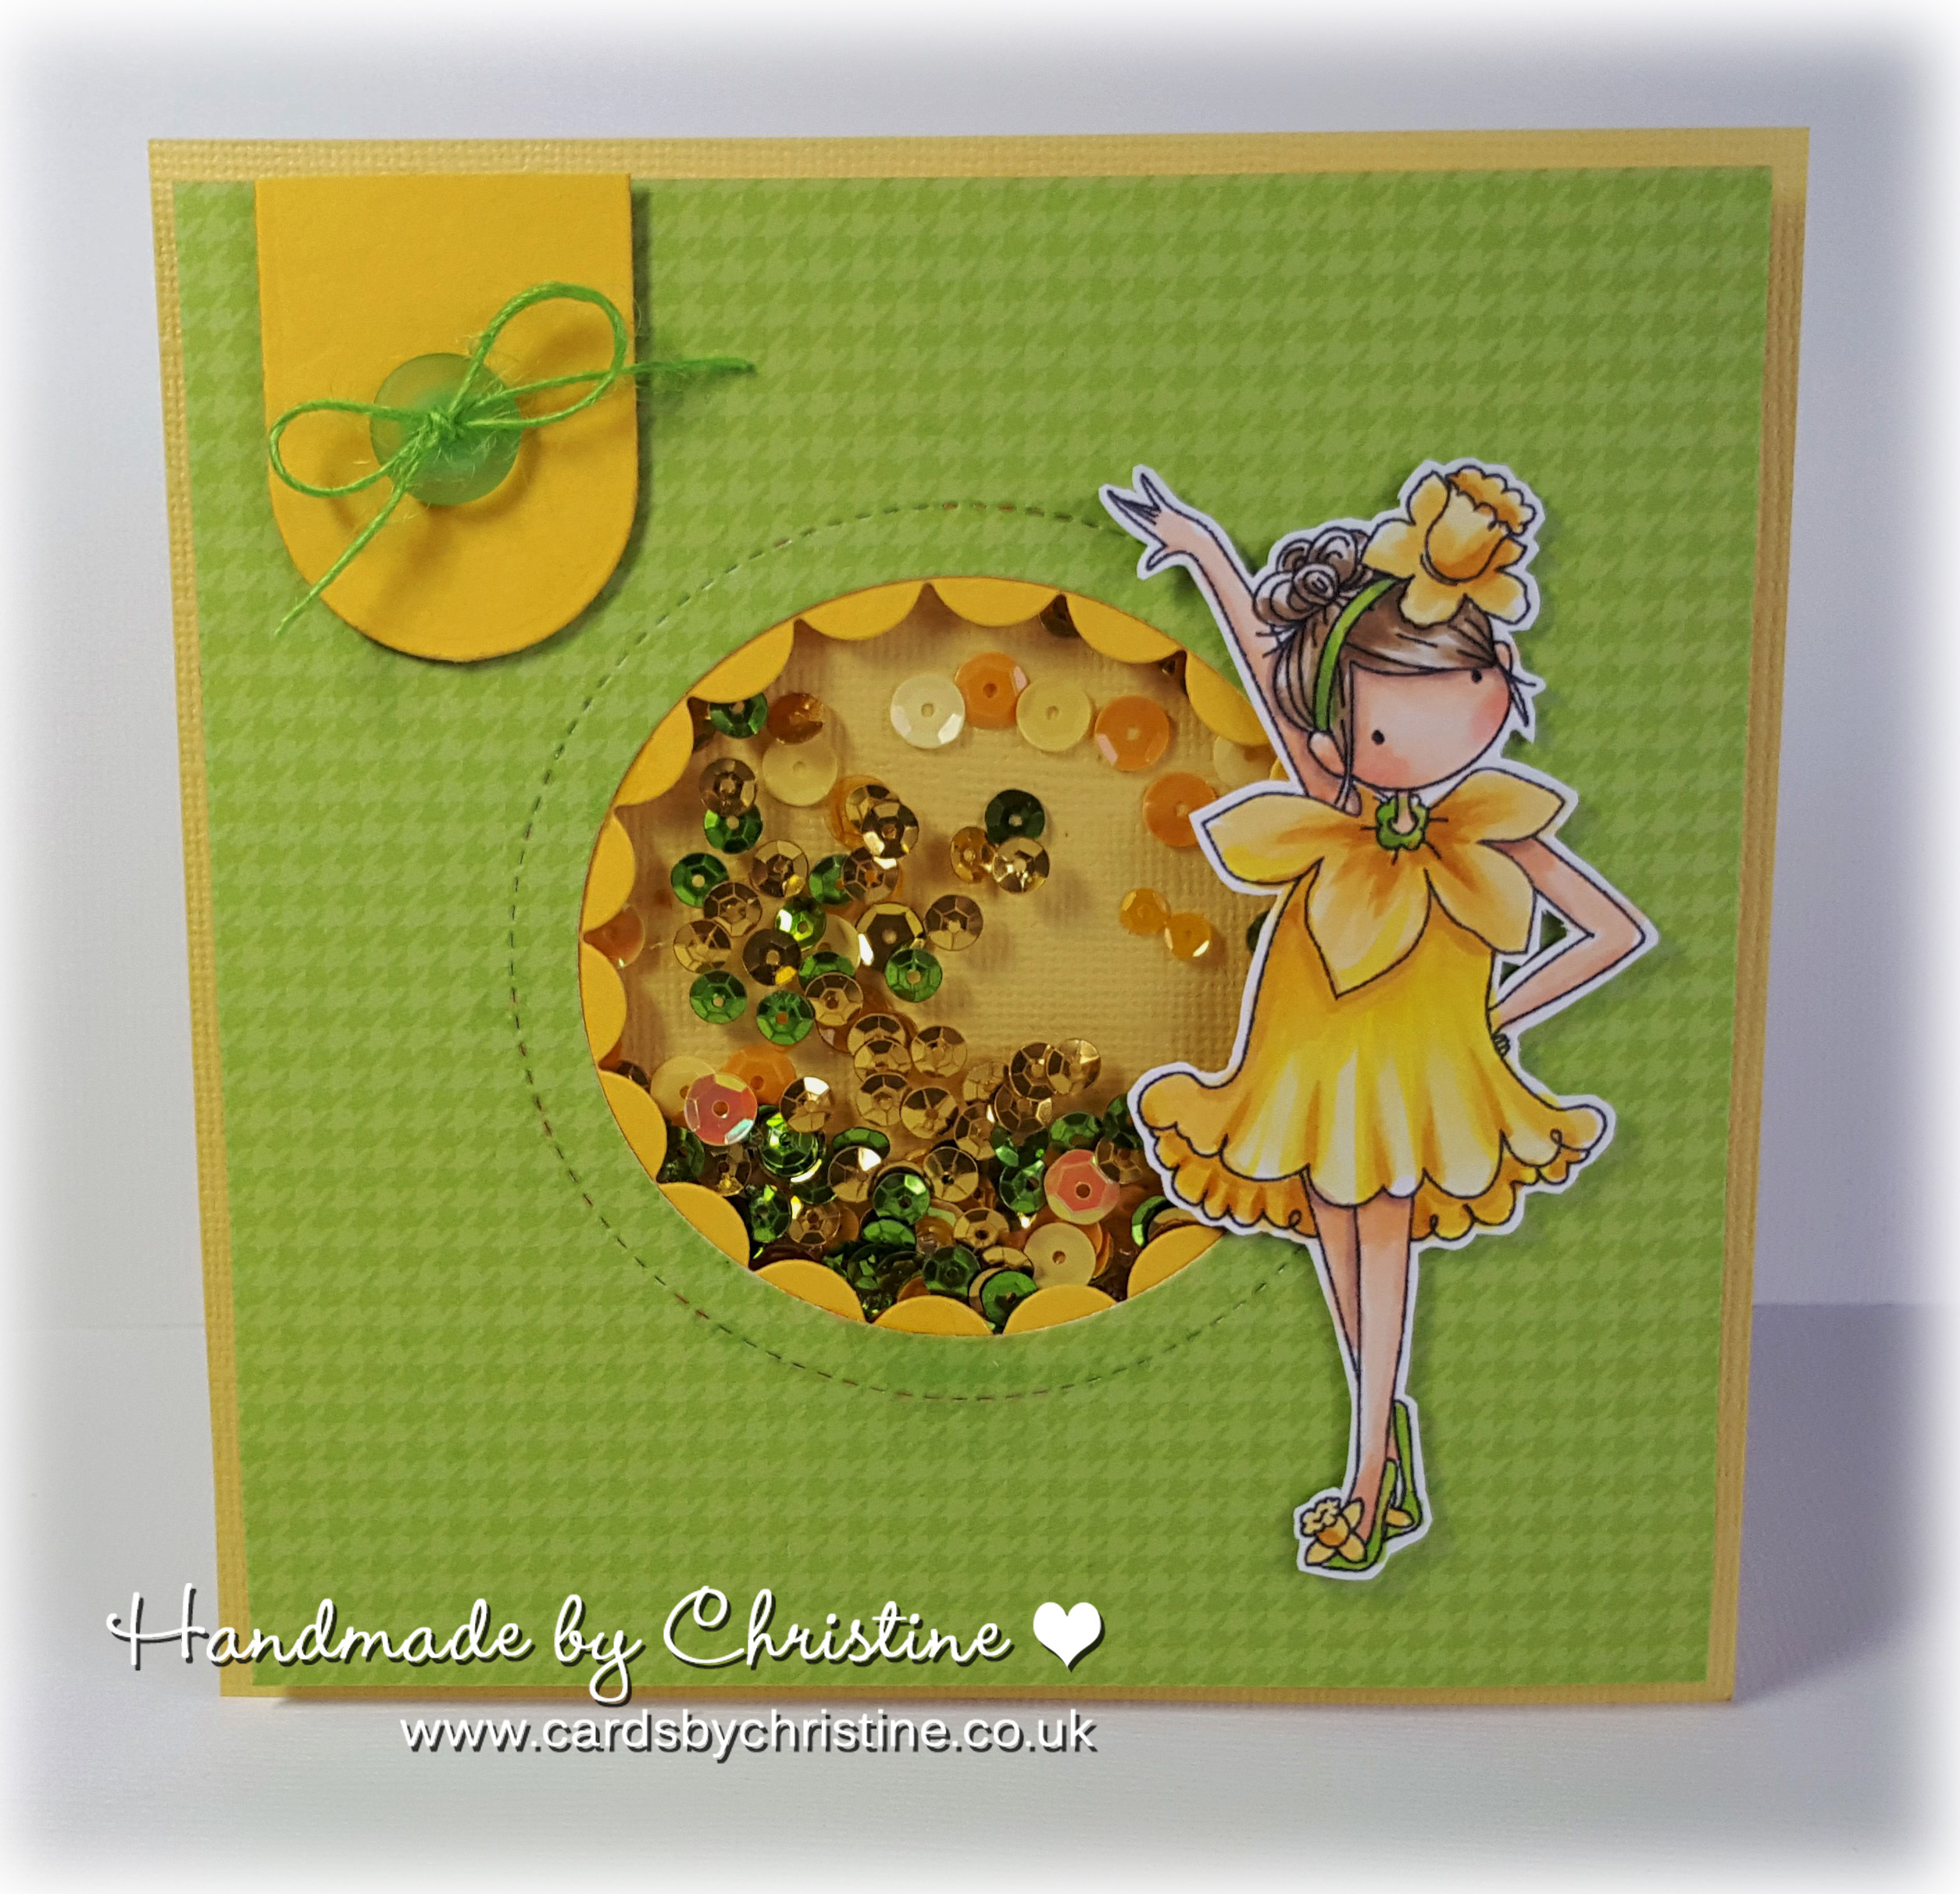 Stamping Bella Sneak Peek March 2017- TINY TOWNIE GARDEN GIRL DAFFODIL RUBBER STAMP. CARD BY CHRISTINE LEVISON